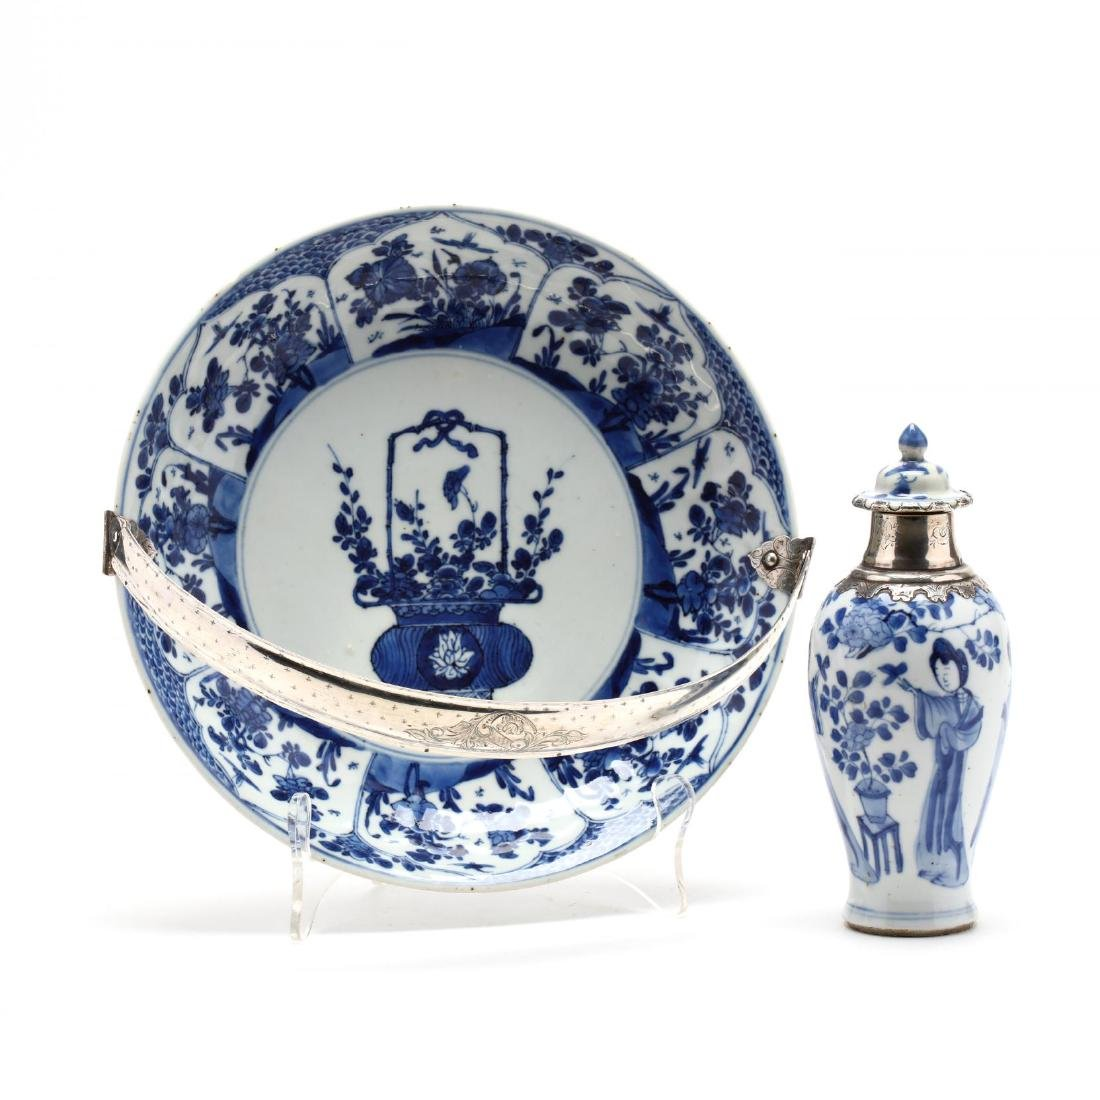 A Chinese Kangxi Period Dish and Covered Jar with Dutch